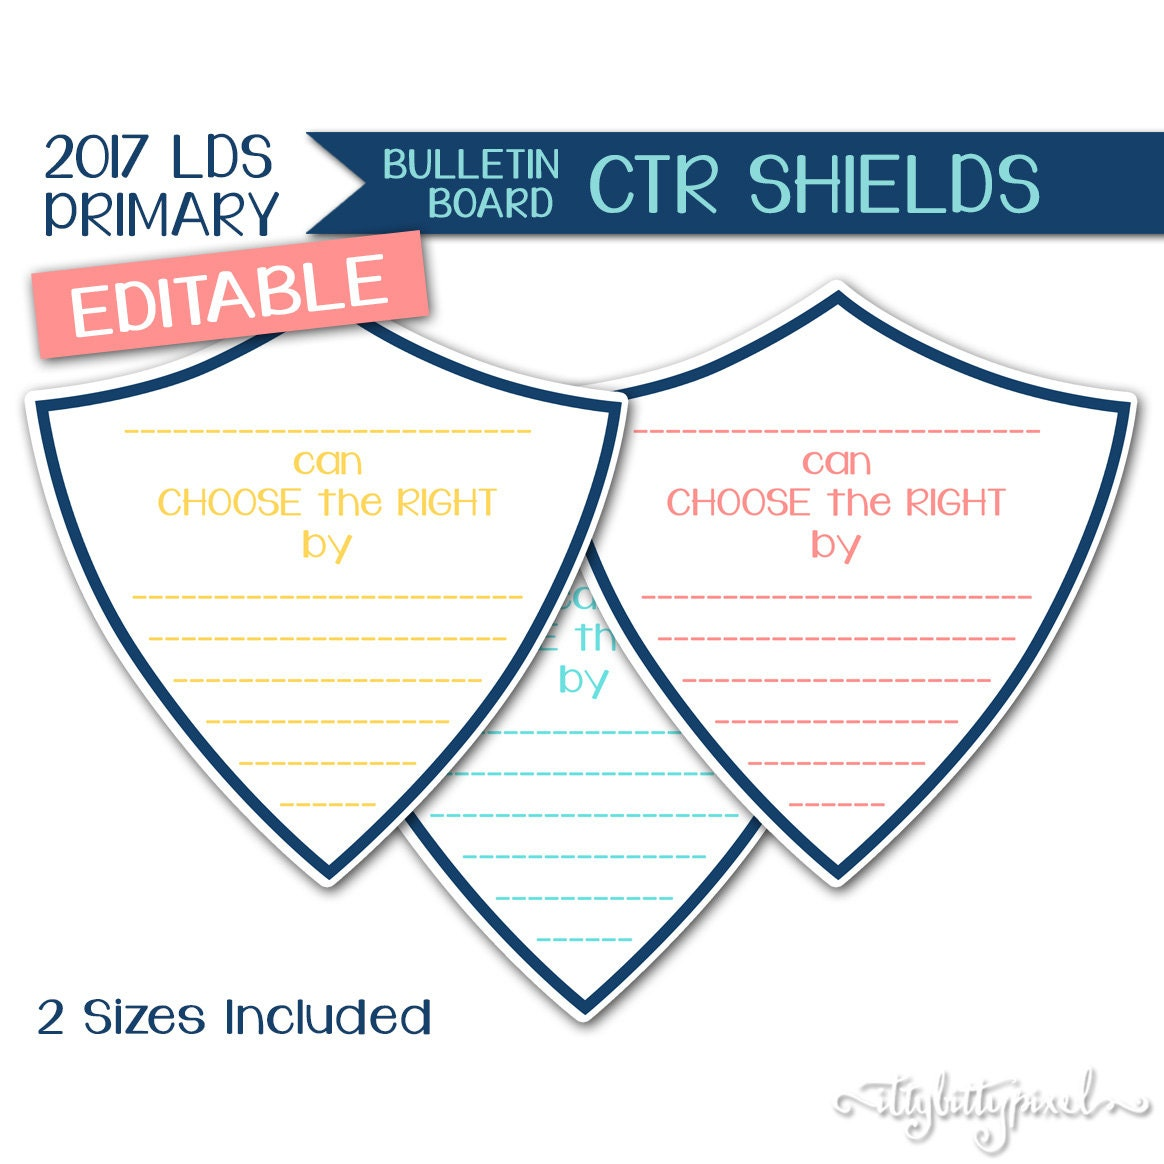 bulletin board ctr shields lds primary 2017 editable